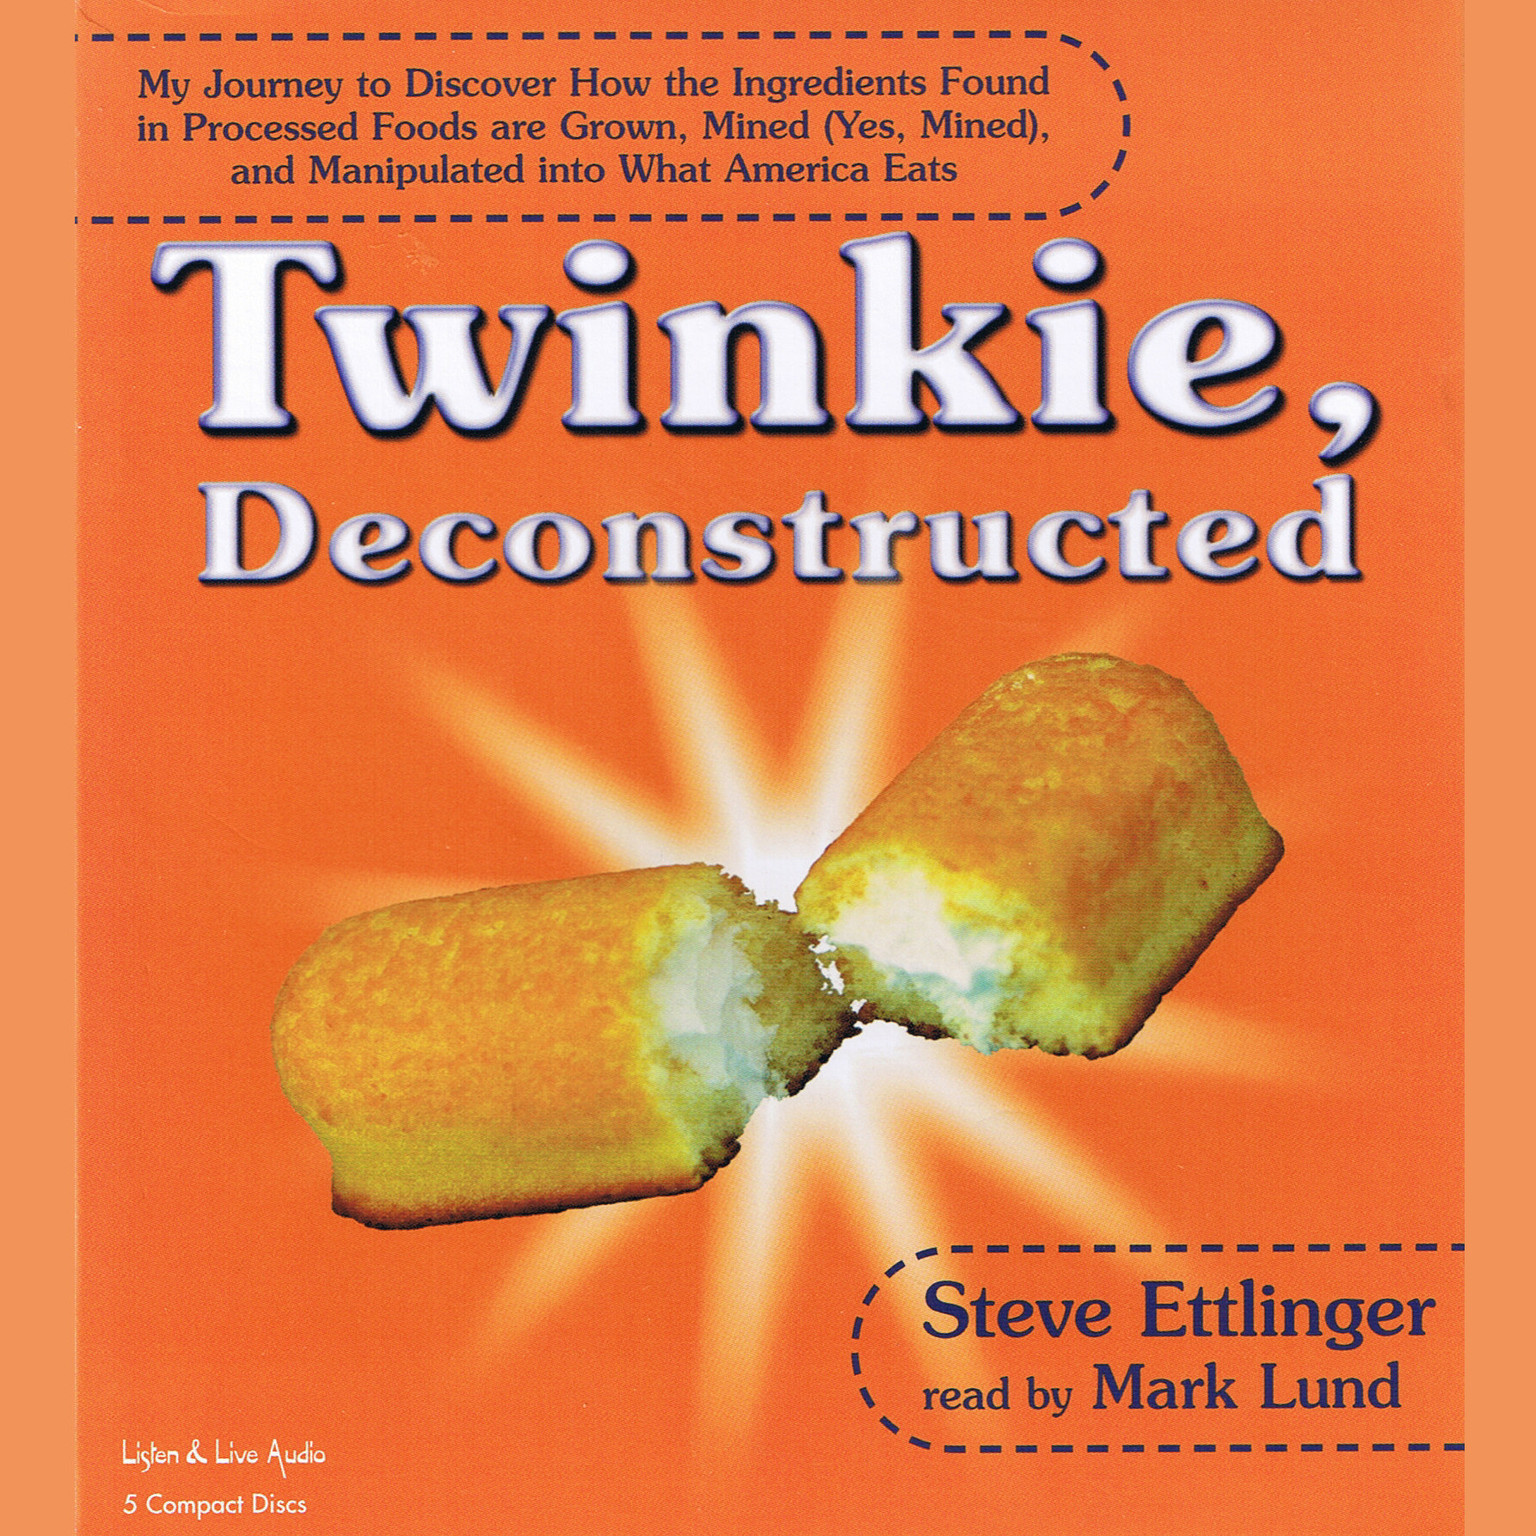 Printable Twinkie, Deconstructed: My Journey to Discover How the Ingredients Found in Processed Foods are Grown, Mined (Yes, Mined), and Manipulated into What America Eats Audiobook Cover Art